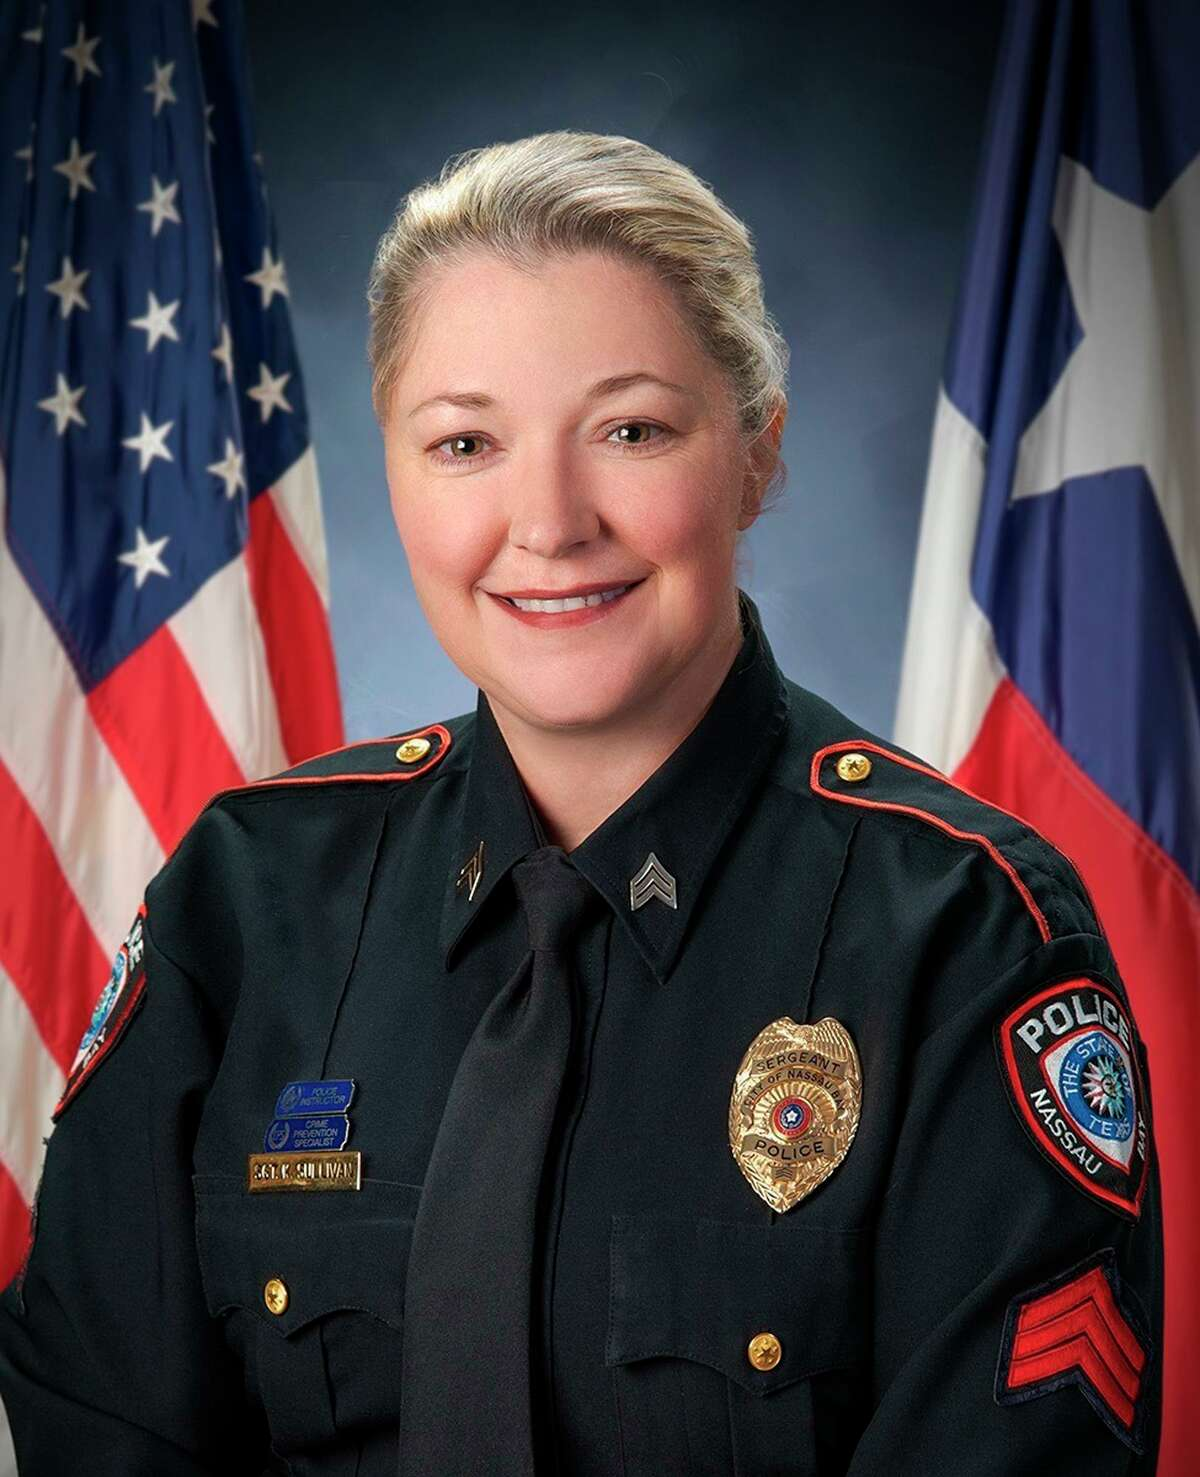 This undated photo provided by the City of Nassau Bay shows Nassau Bay Police Sgt. Kaila Sullivan, who died Tuesday night, Dec. 10, 2019, when she was struck by a vehicle fleeing a traffic stop, in Nassau Bay, Texas. Sullivan, 43, had worked for the Nassau Bay Police Department for more than 15 years. (City of Nassau Bay via AP)